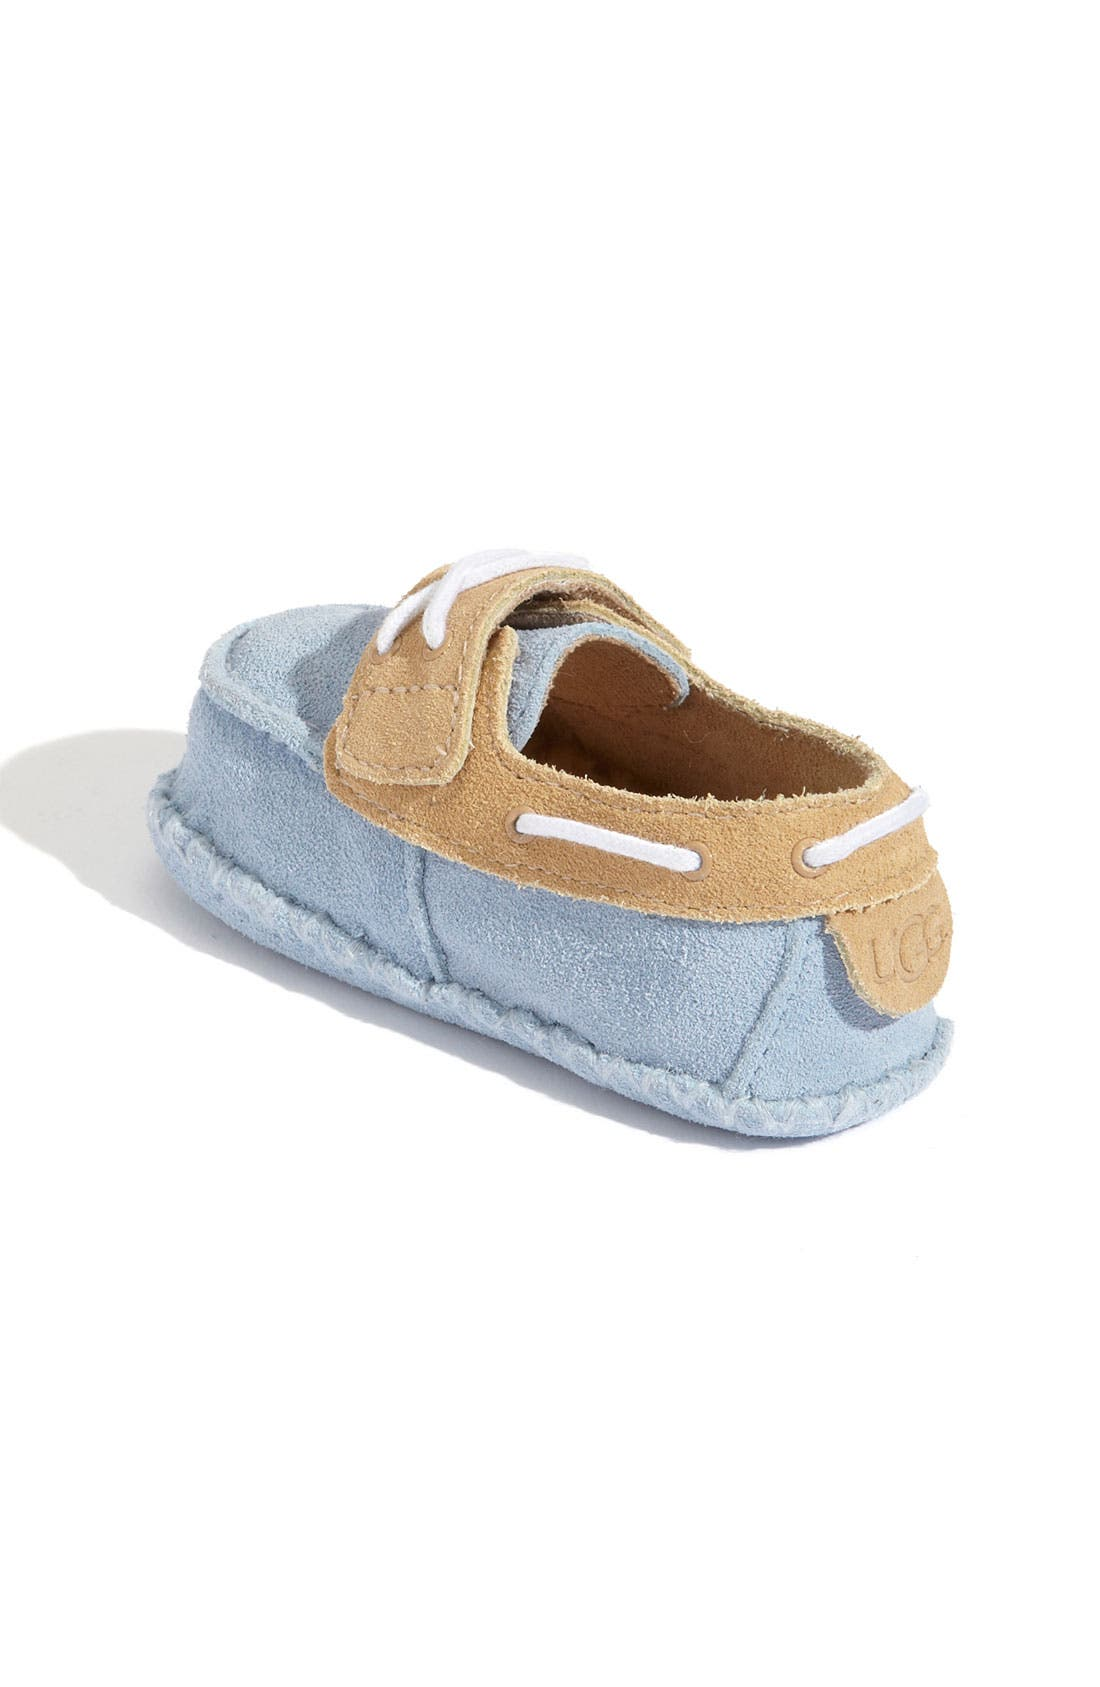 Alternate Image 2  - UGG® Australia 'Zach' Slip-On (Baby & Walker)